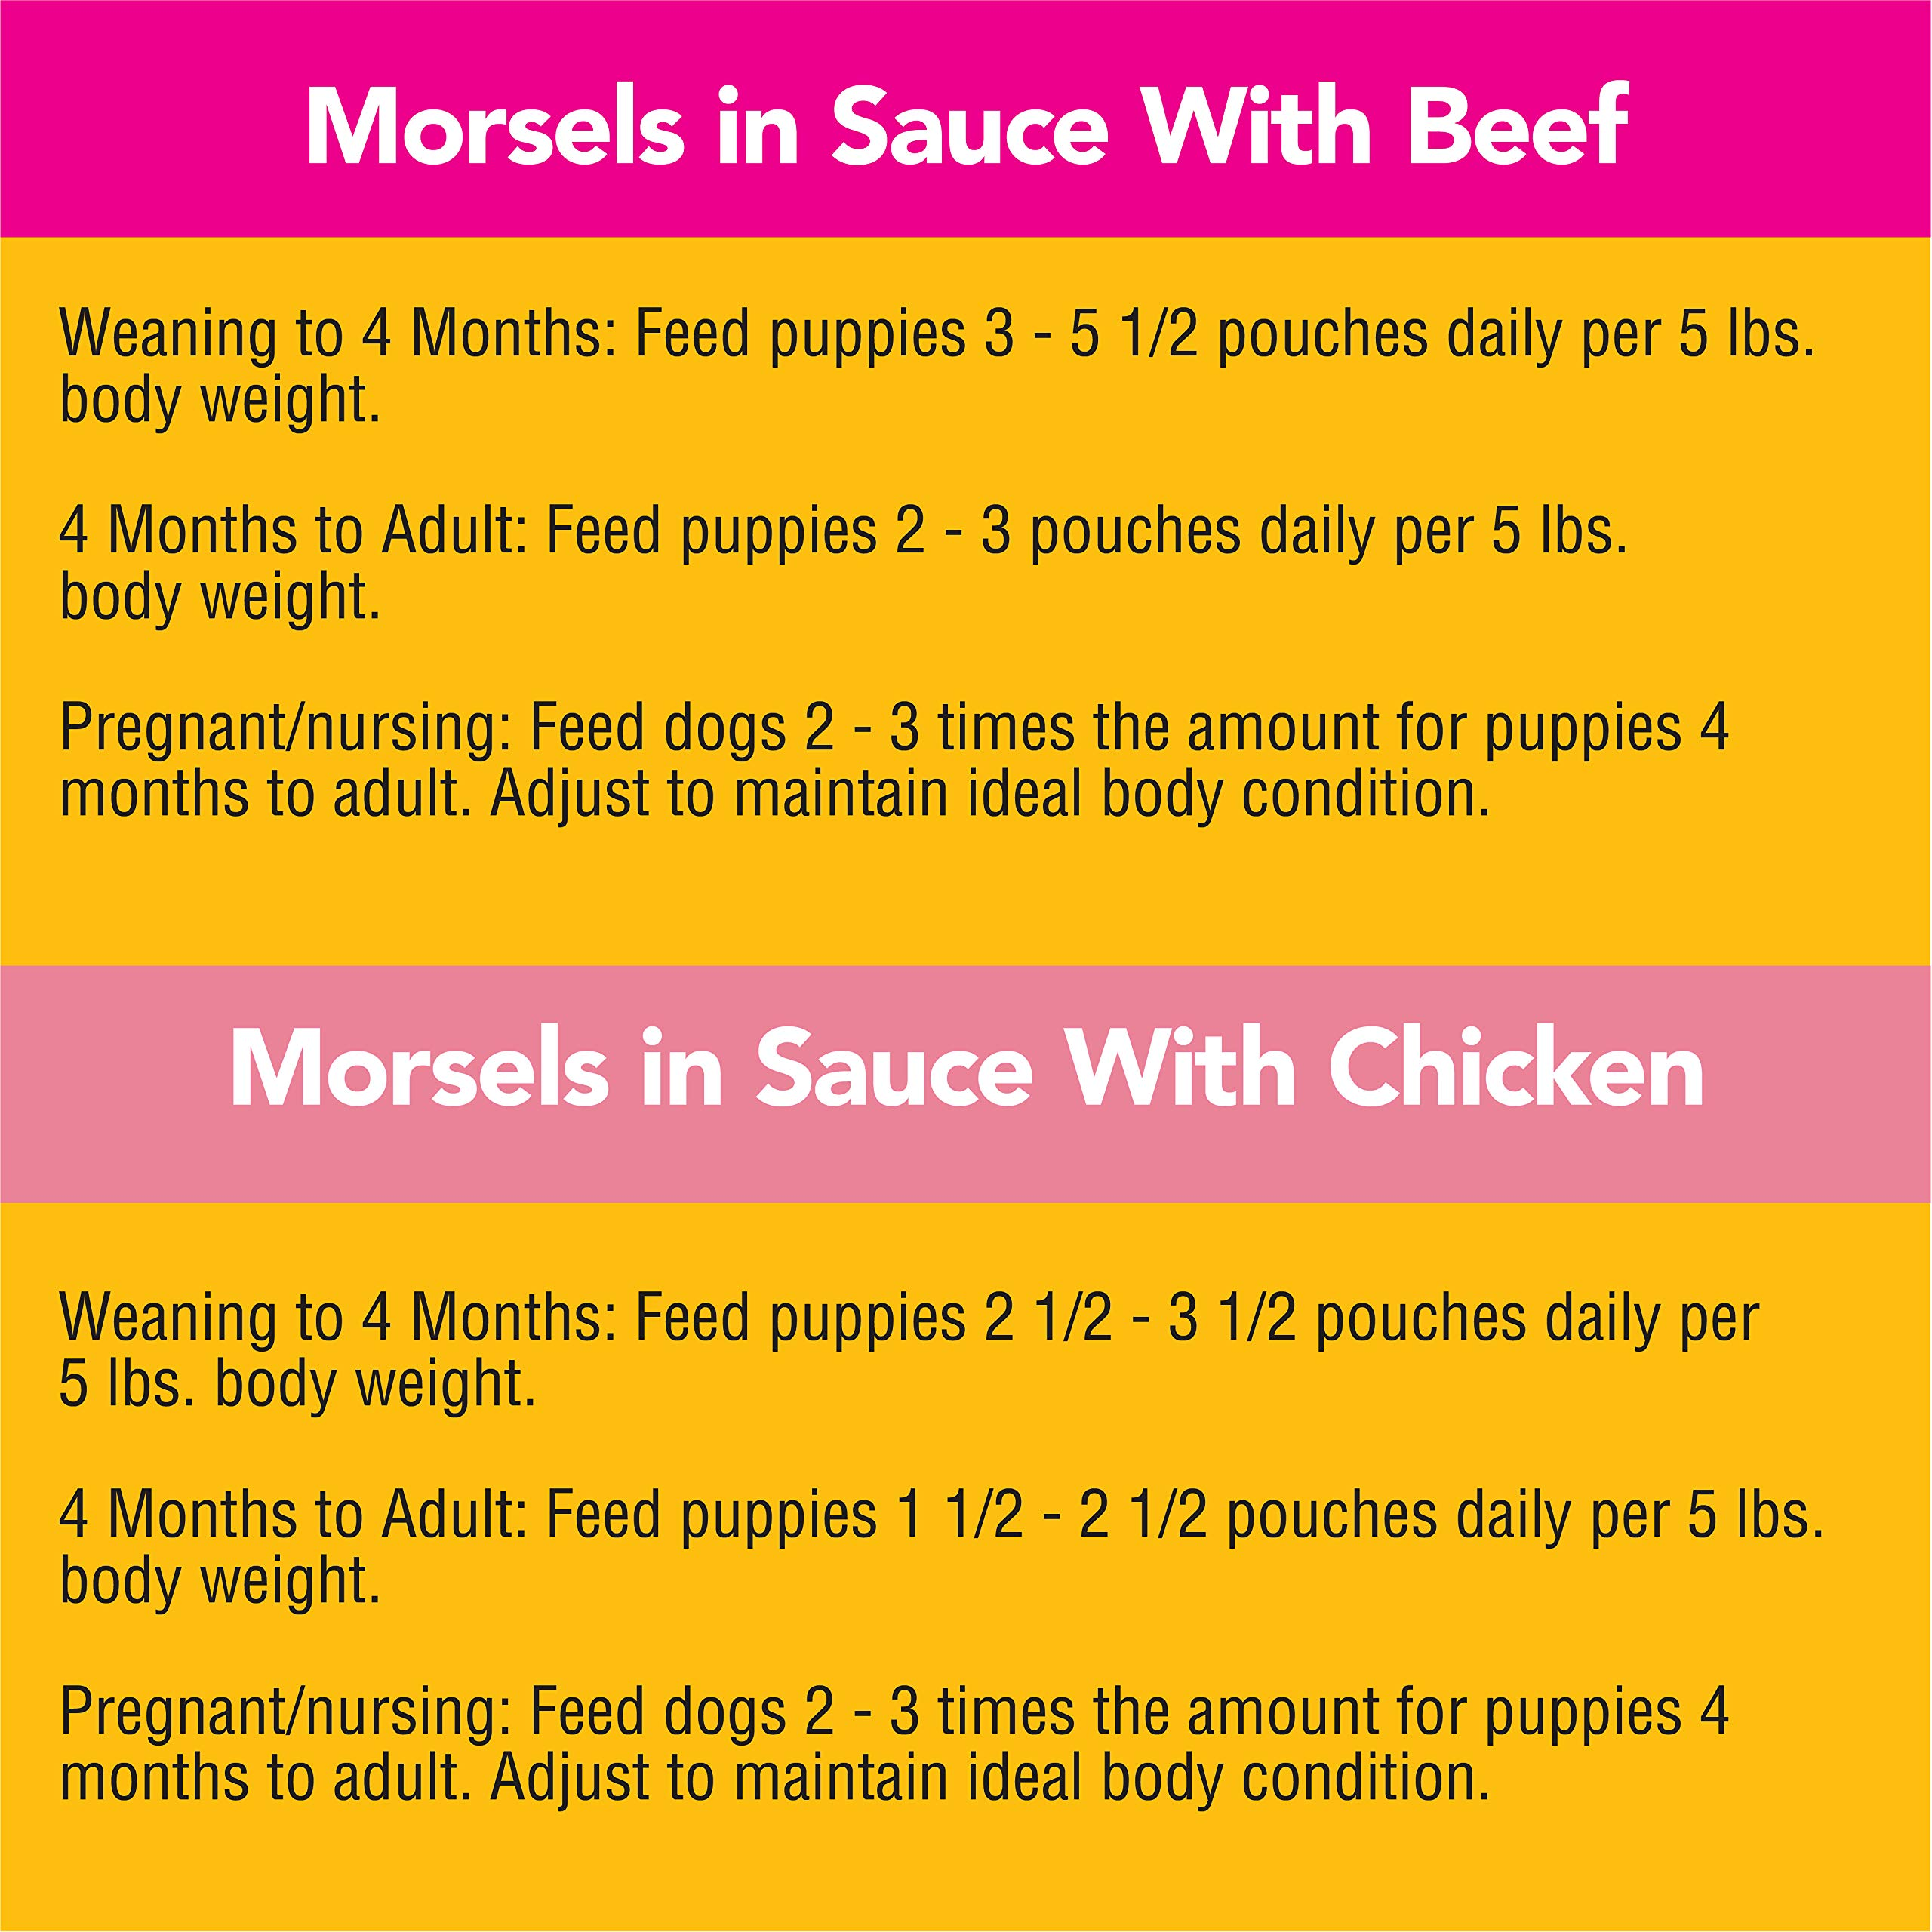 Pedigree CHOICE CUTS Puppy Morsels in Sauce Wet Dog Food Variety Pack Chicken Beef, (16) 3.5 oz. Pouches by Pedigree (Image #9)